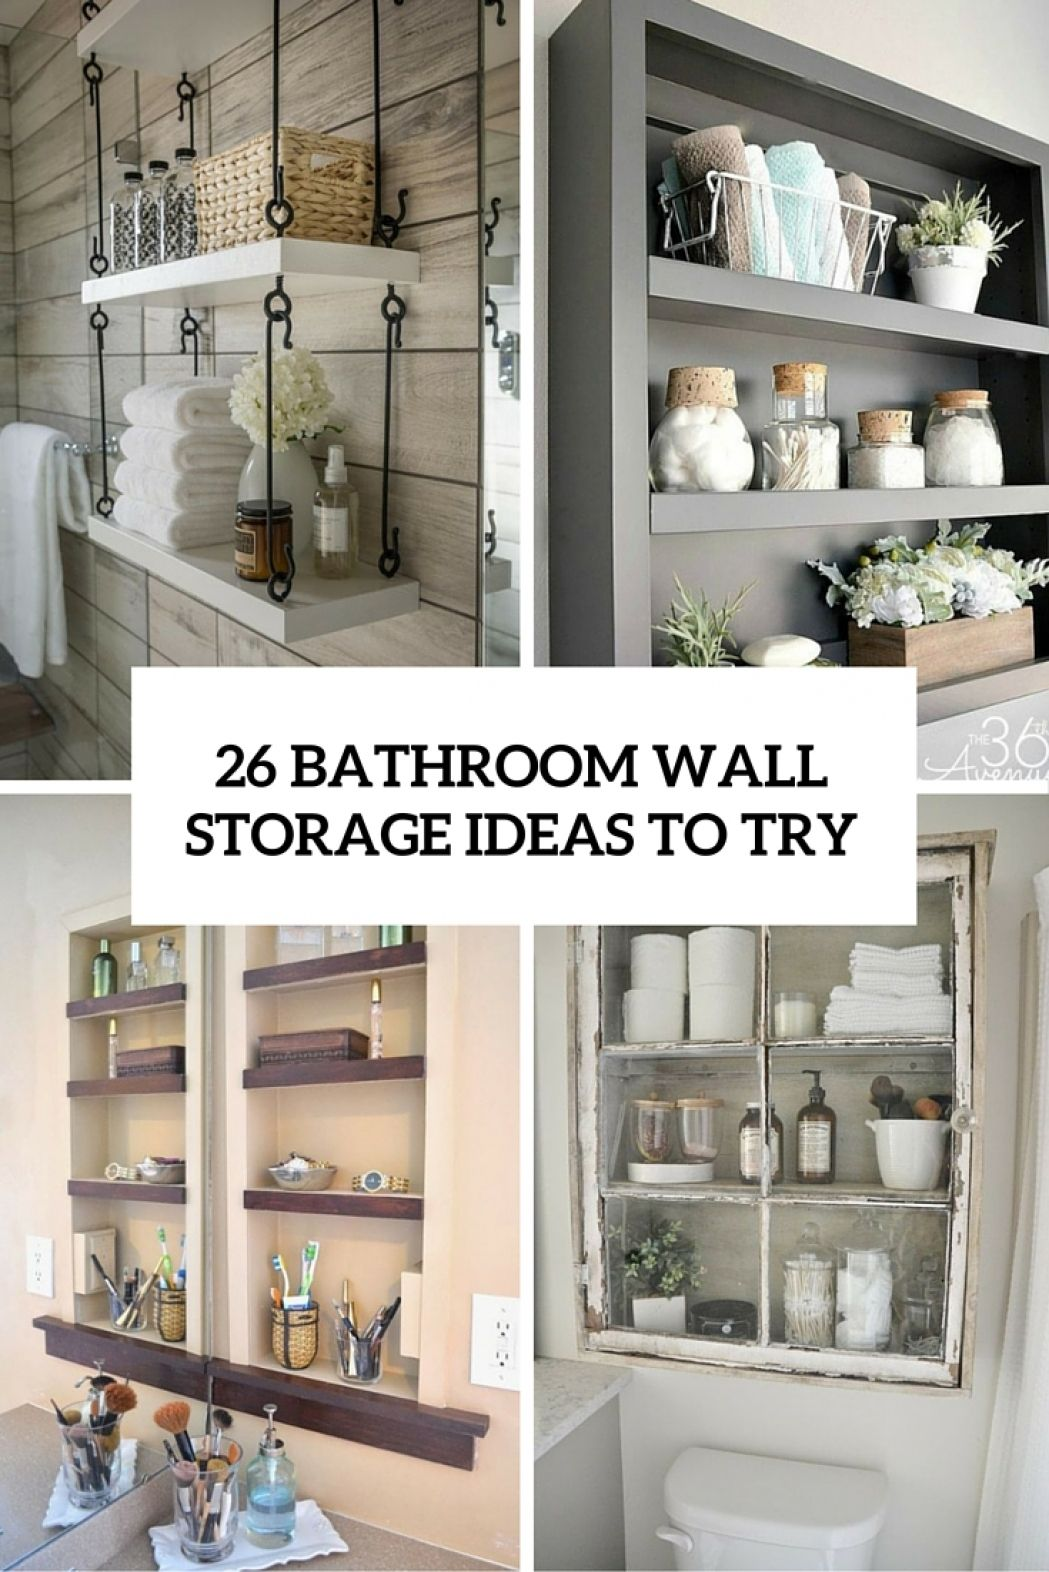 Bathroom Storage Ideas For Small Spaces Bathroom Storage Ideas Diy Bathroom Storage Id Bathroom Wall Storage Pictures For Bathroom Walls Wall Storage Shelves